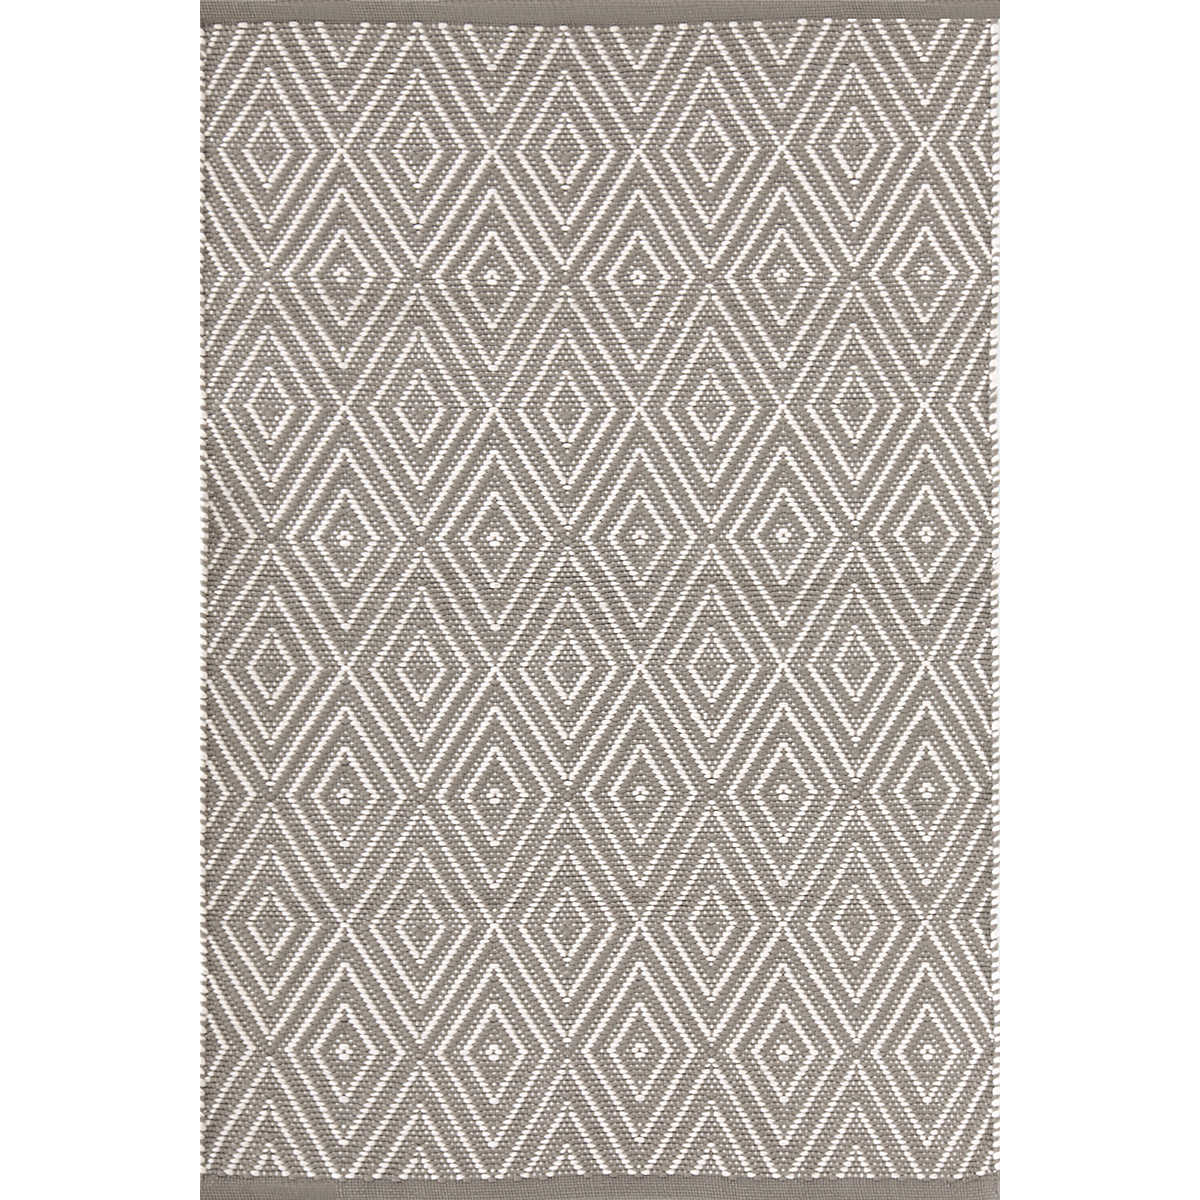 teppich grau beige woven carpet modern high quality. Black Bedroom Furniture Sets. Home Design Ideas